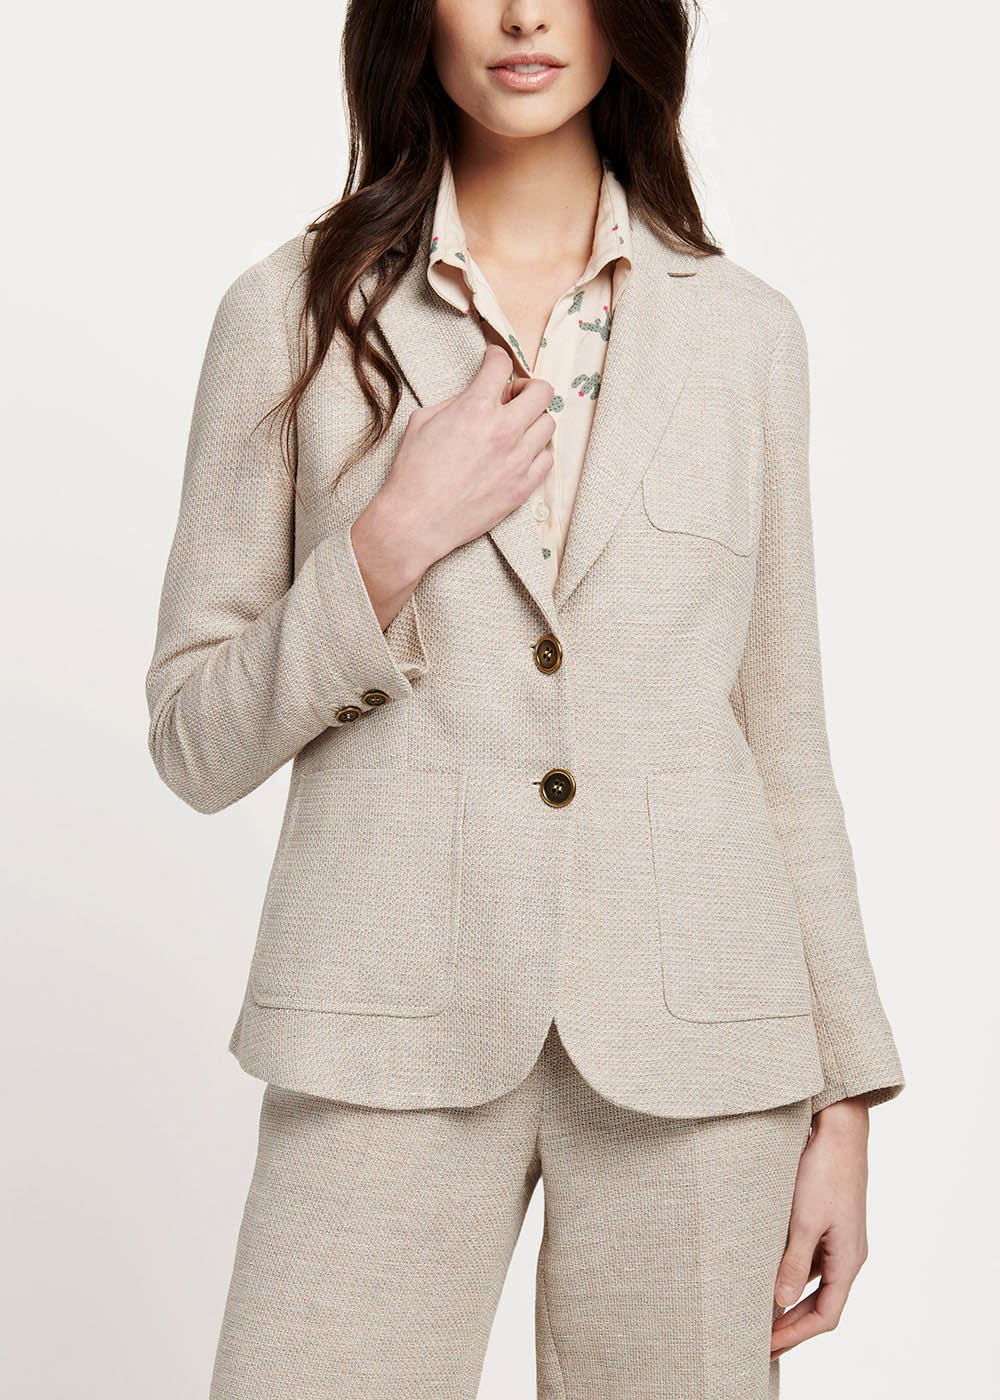 Kelly jacket with rush matting effect - Light Beige - Woman